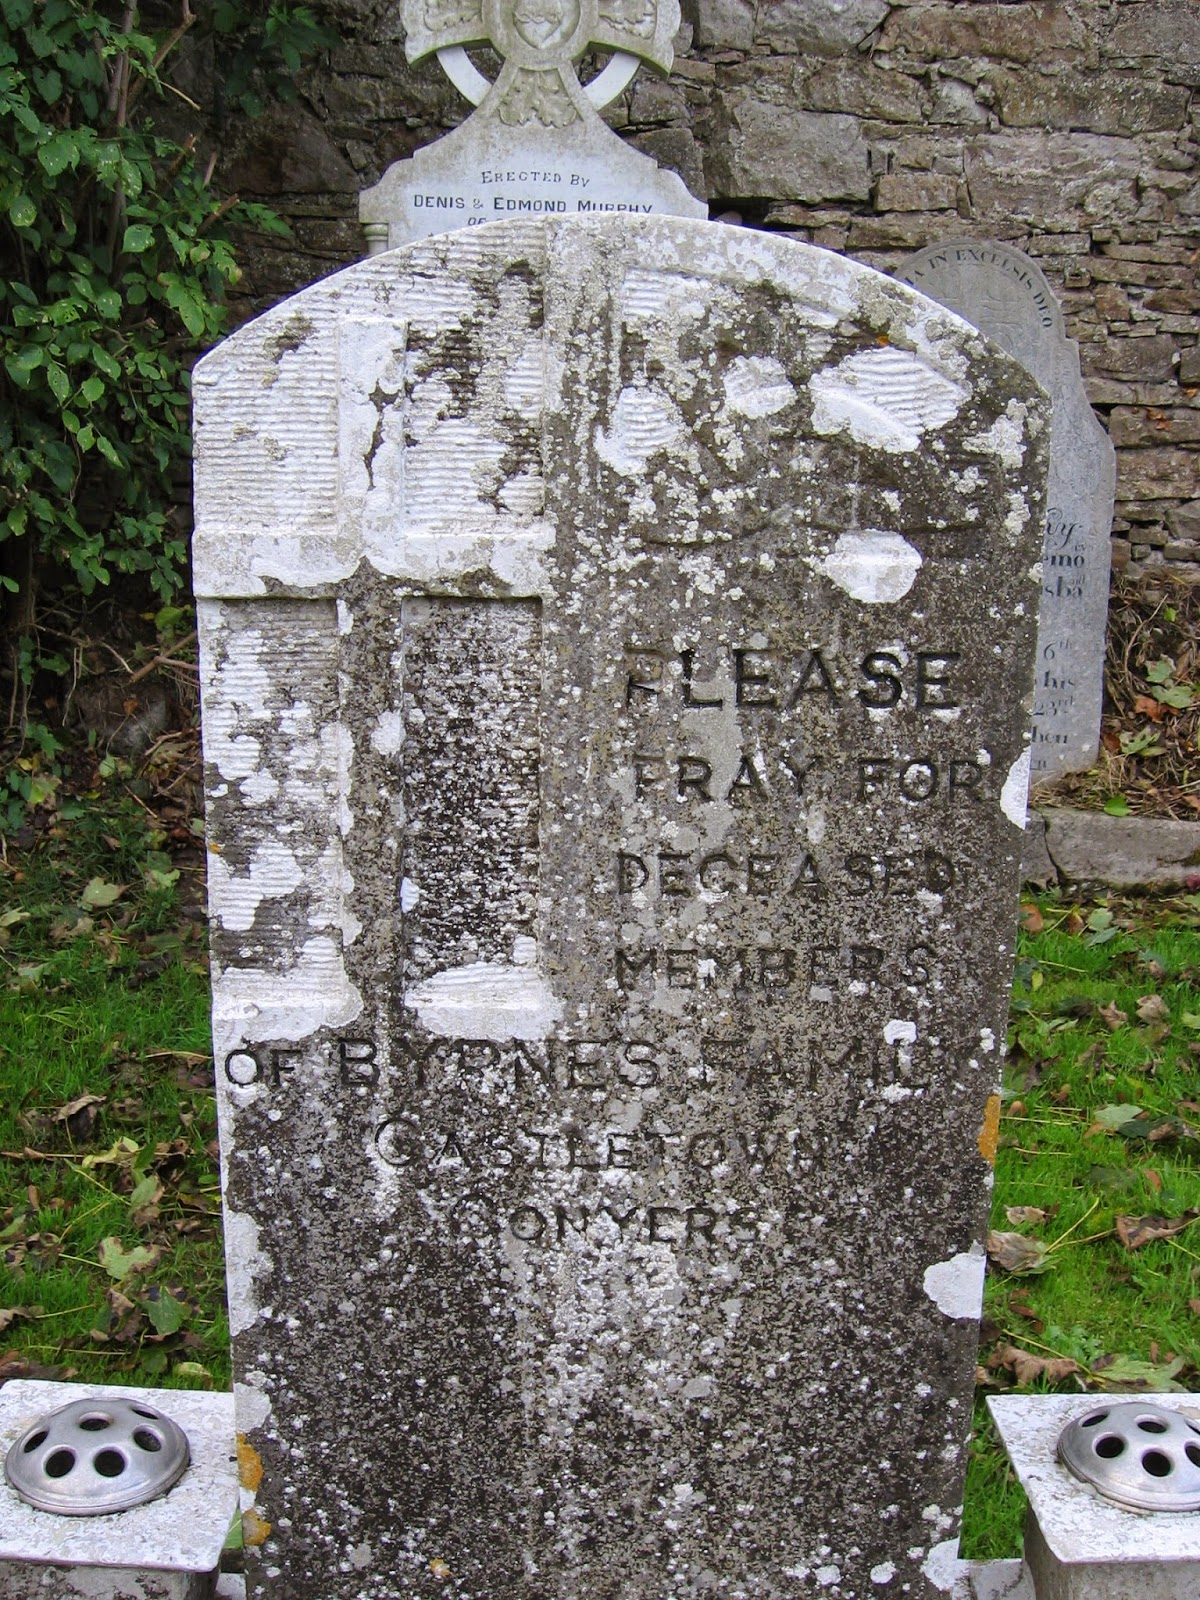 Please pray for deceased members of Byrnes family of Castletown Conyers in County Limerick Ireland